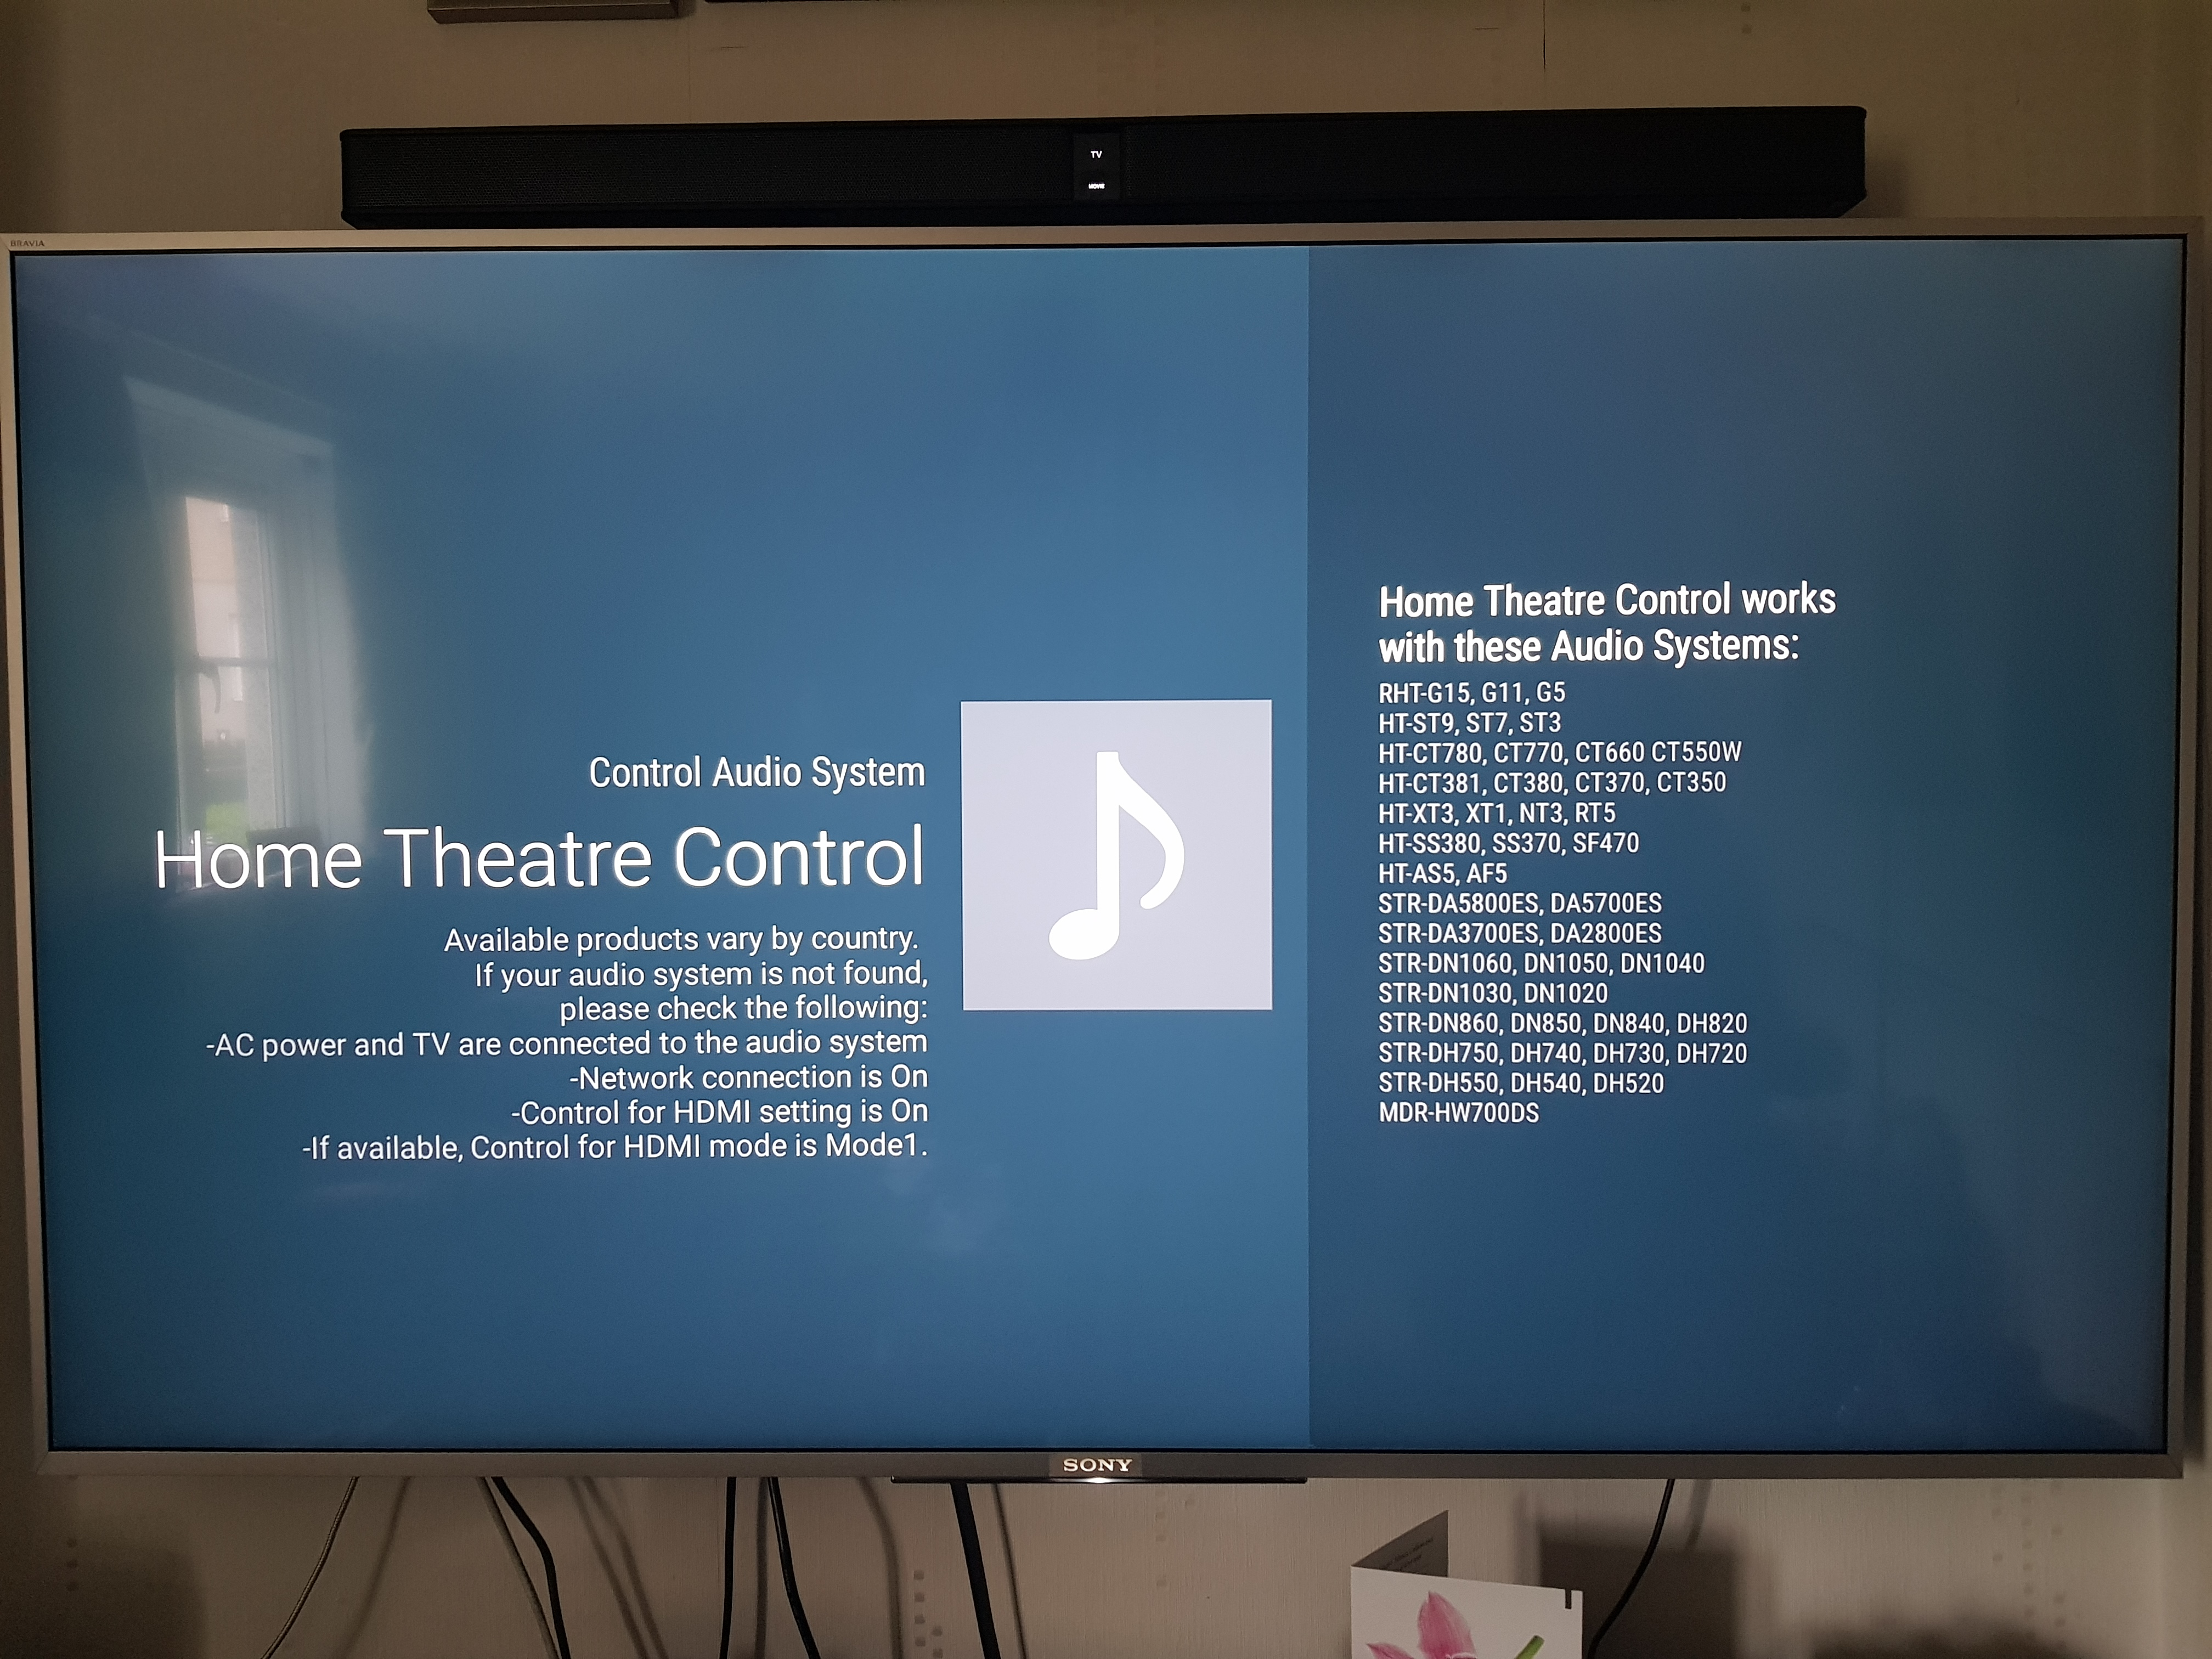 KD-55X8577 & HT-CT290 audio sync issues - Sony